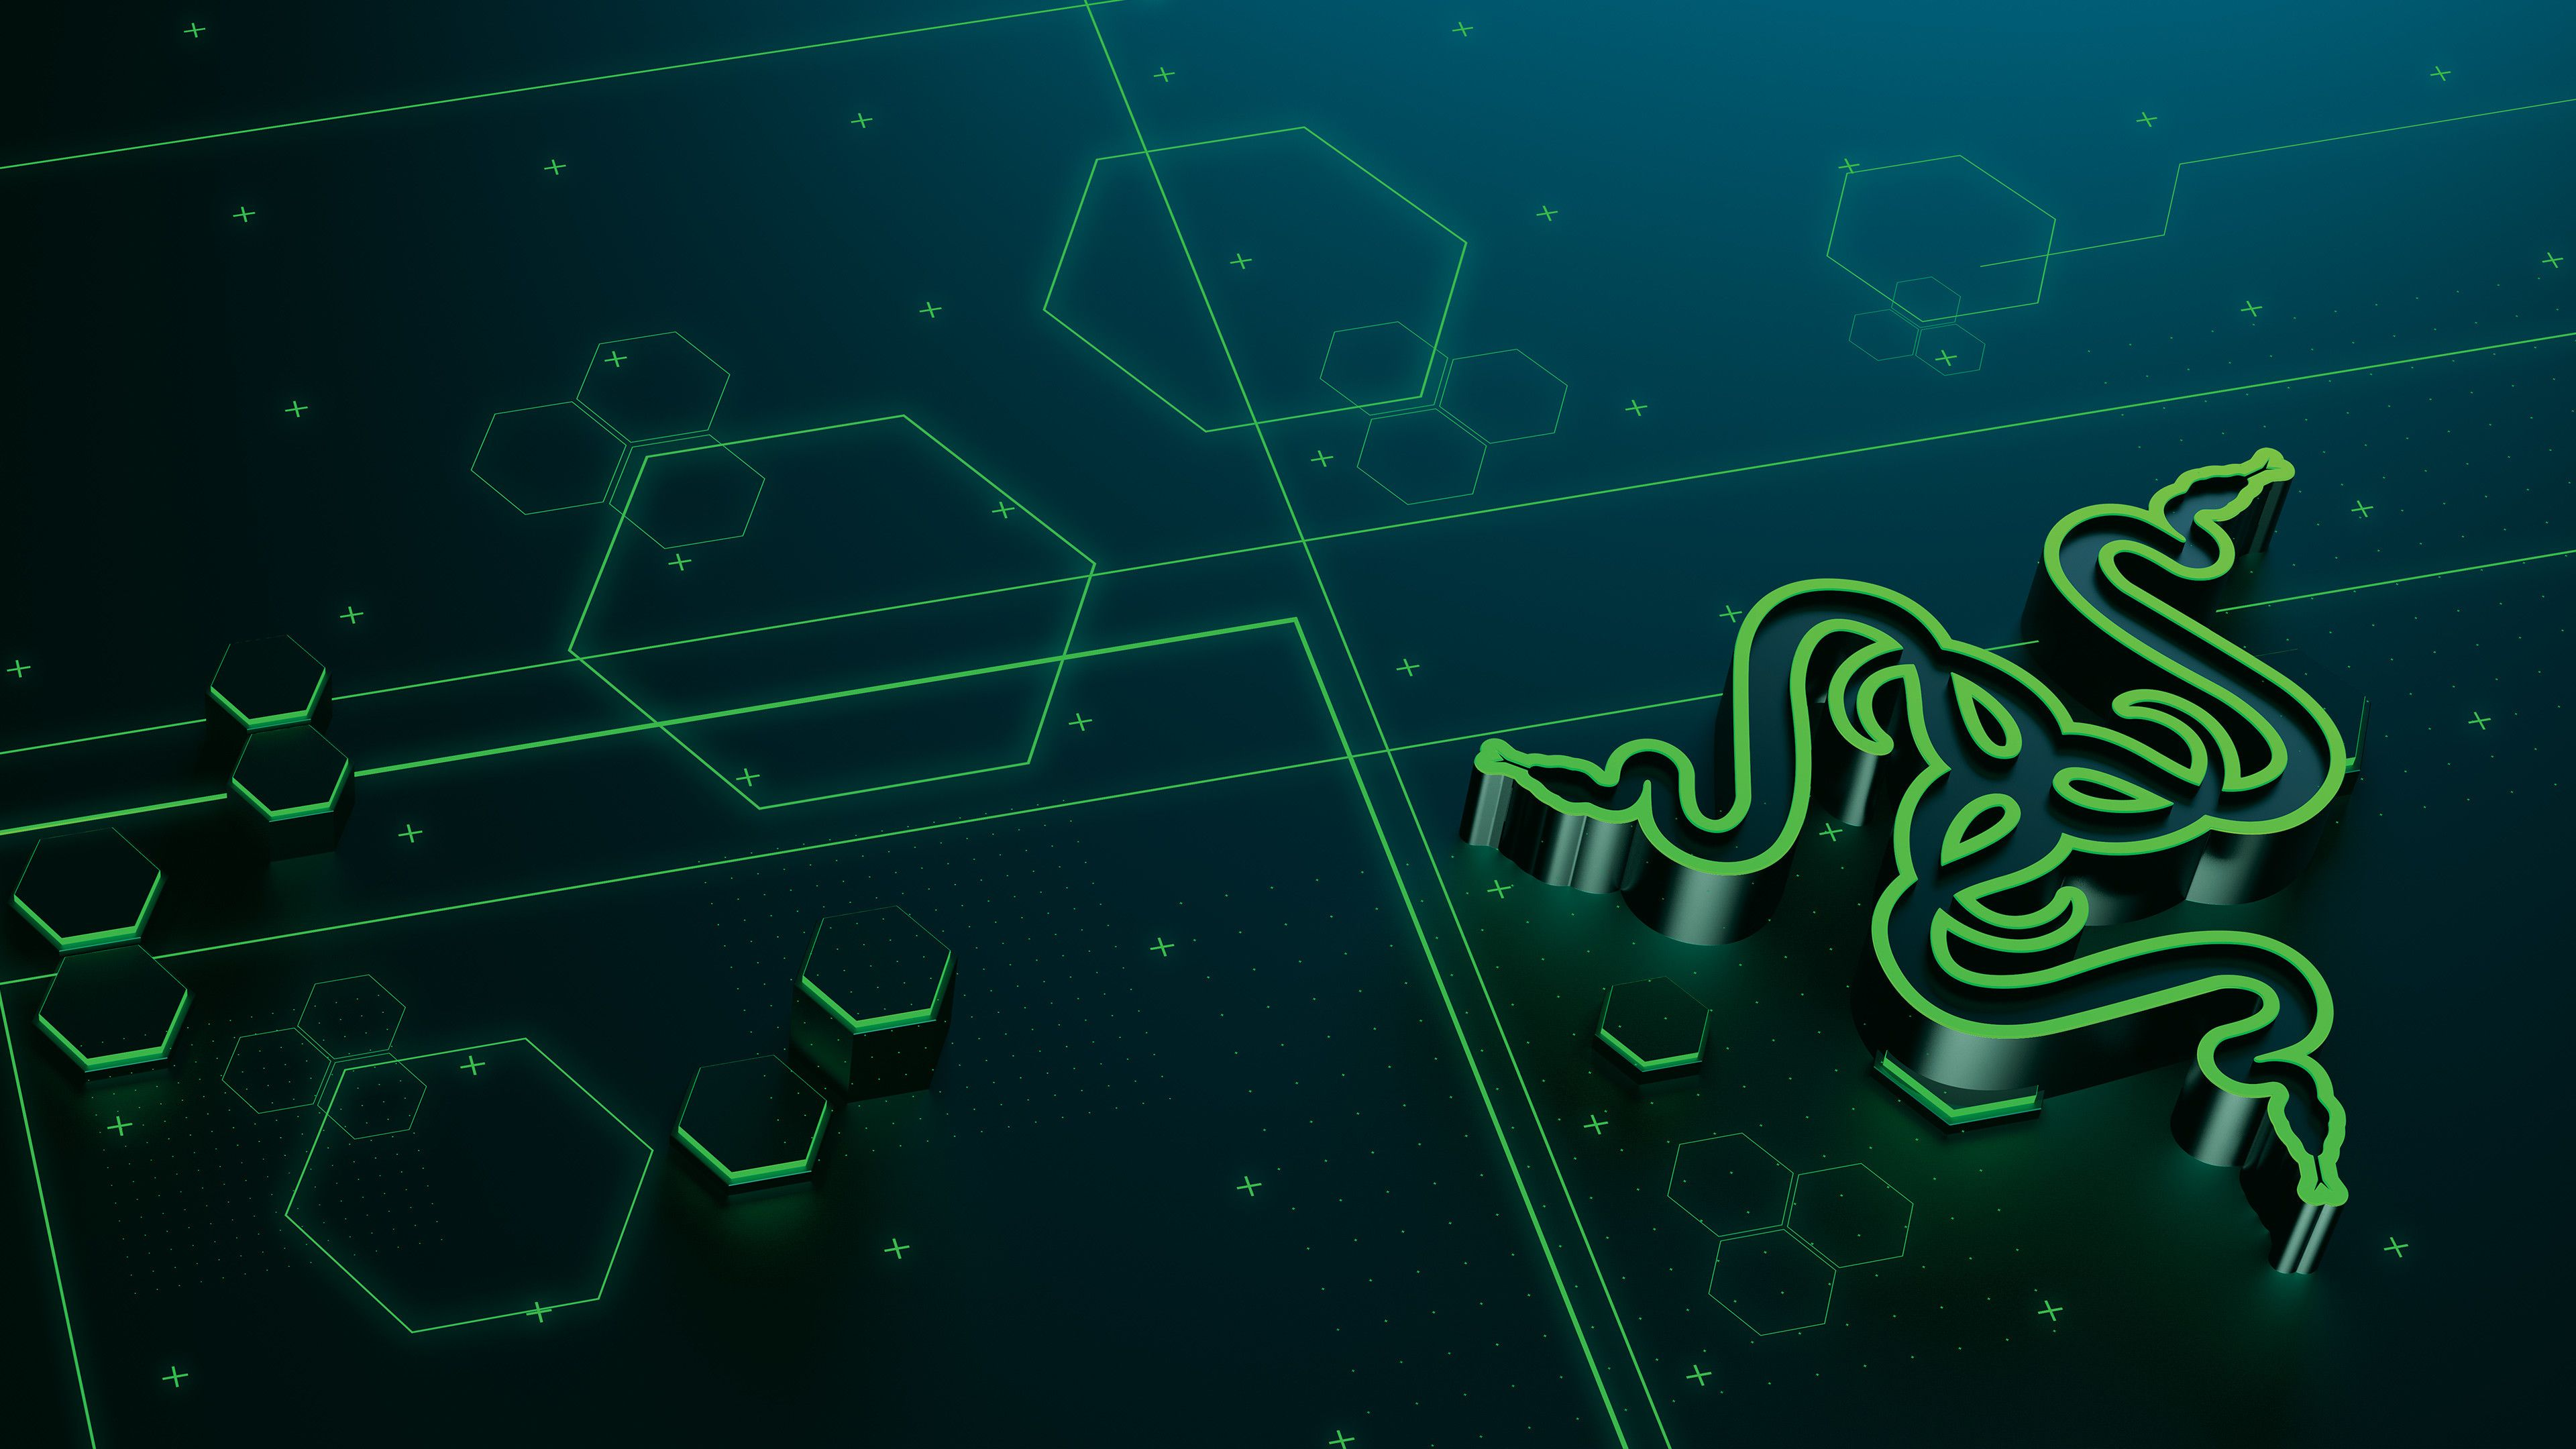 3840x2160 Razer Desktop Background 4K Wallpaper